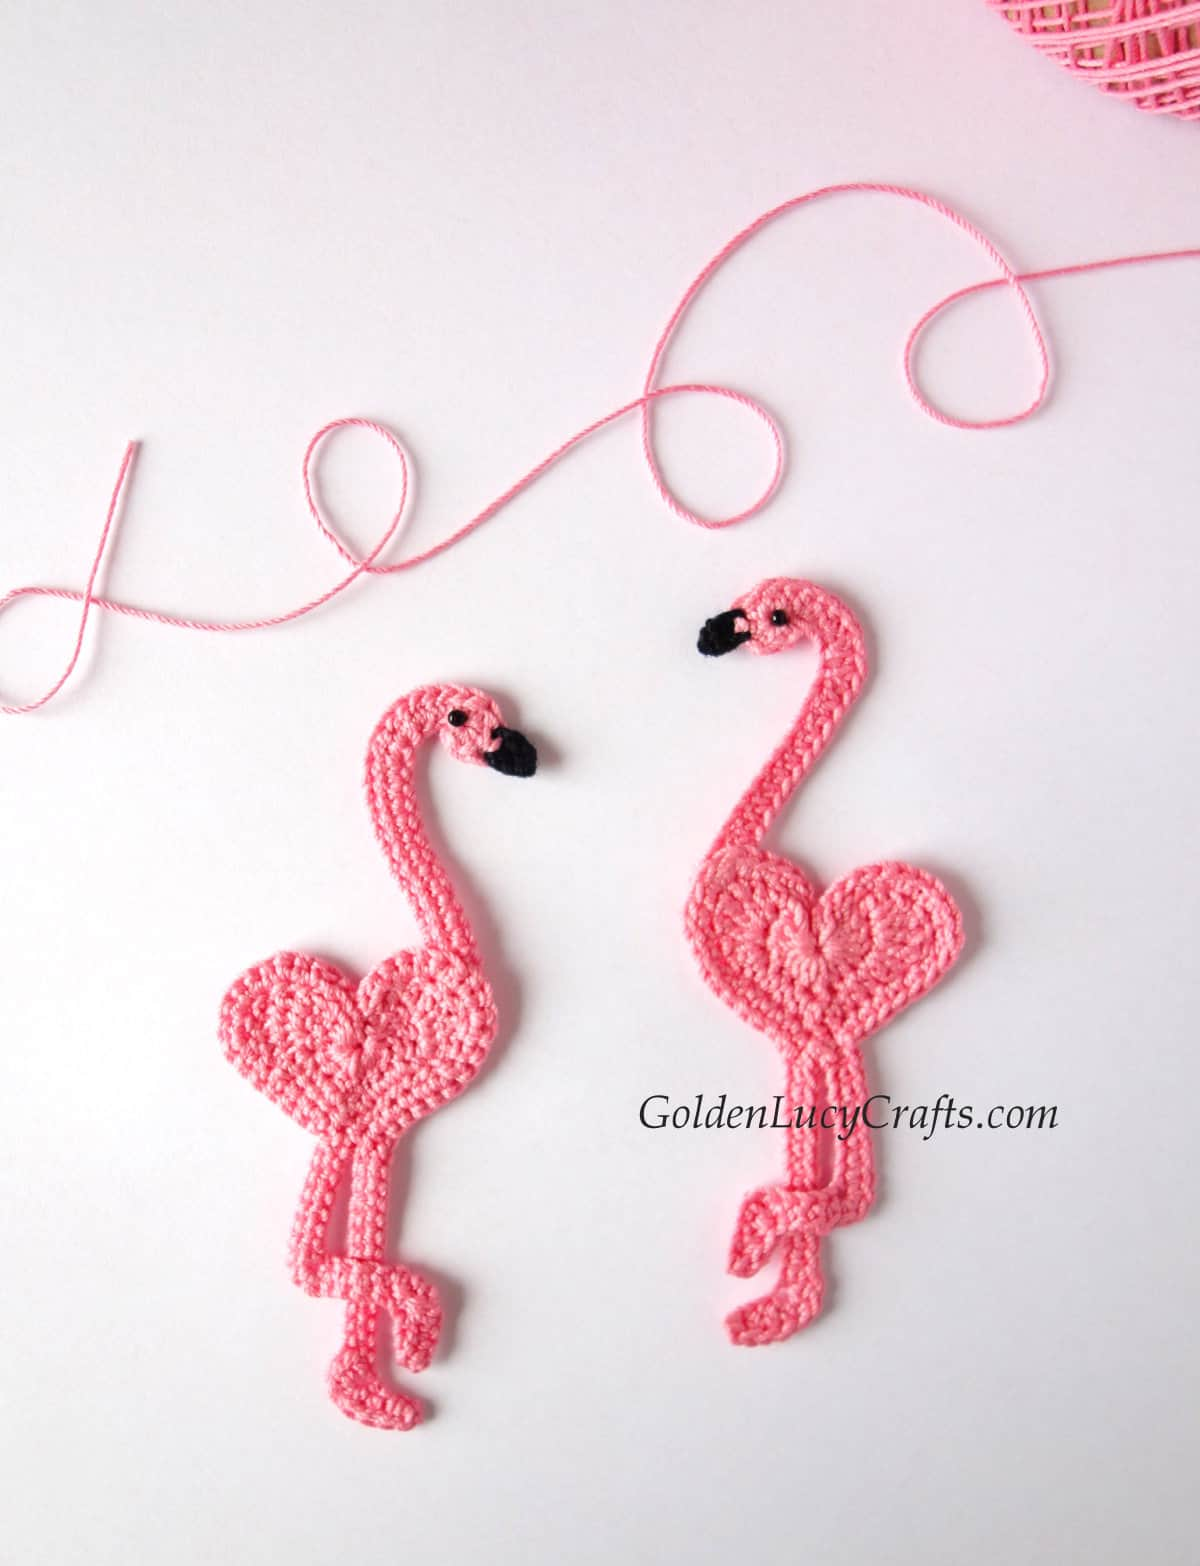 Two crocheted flamingo appliques.